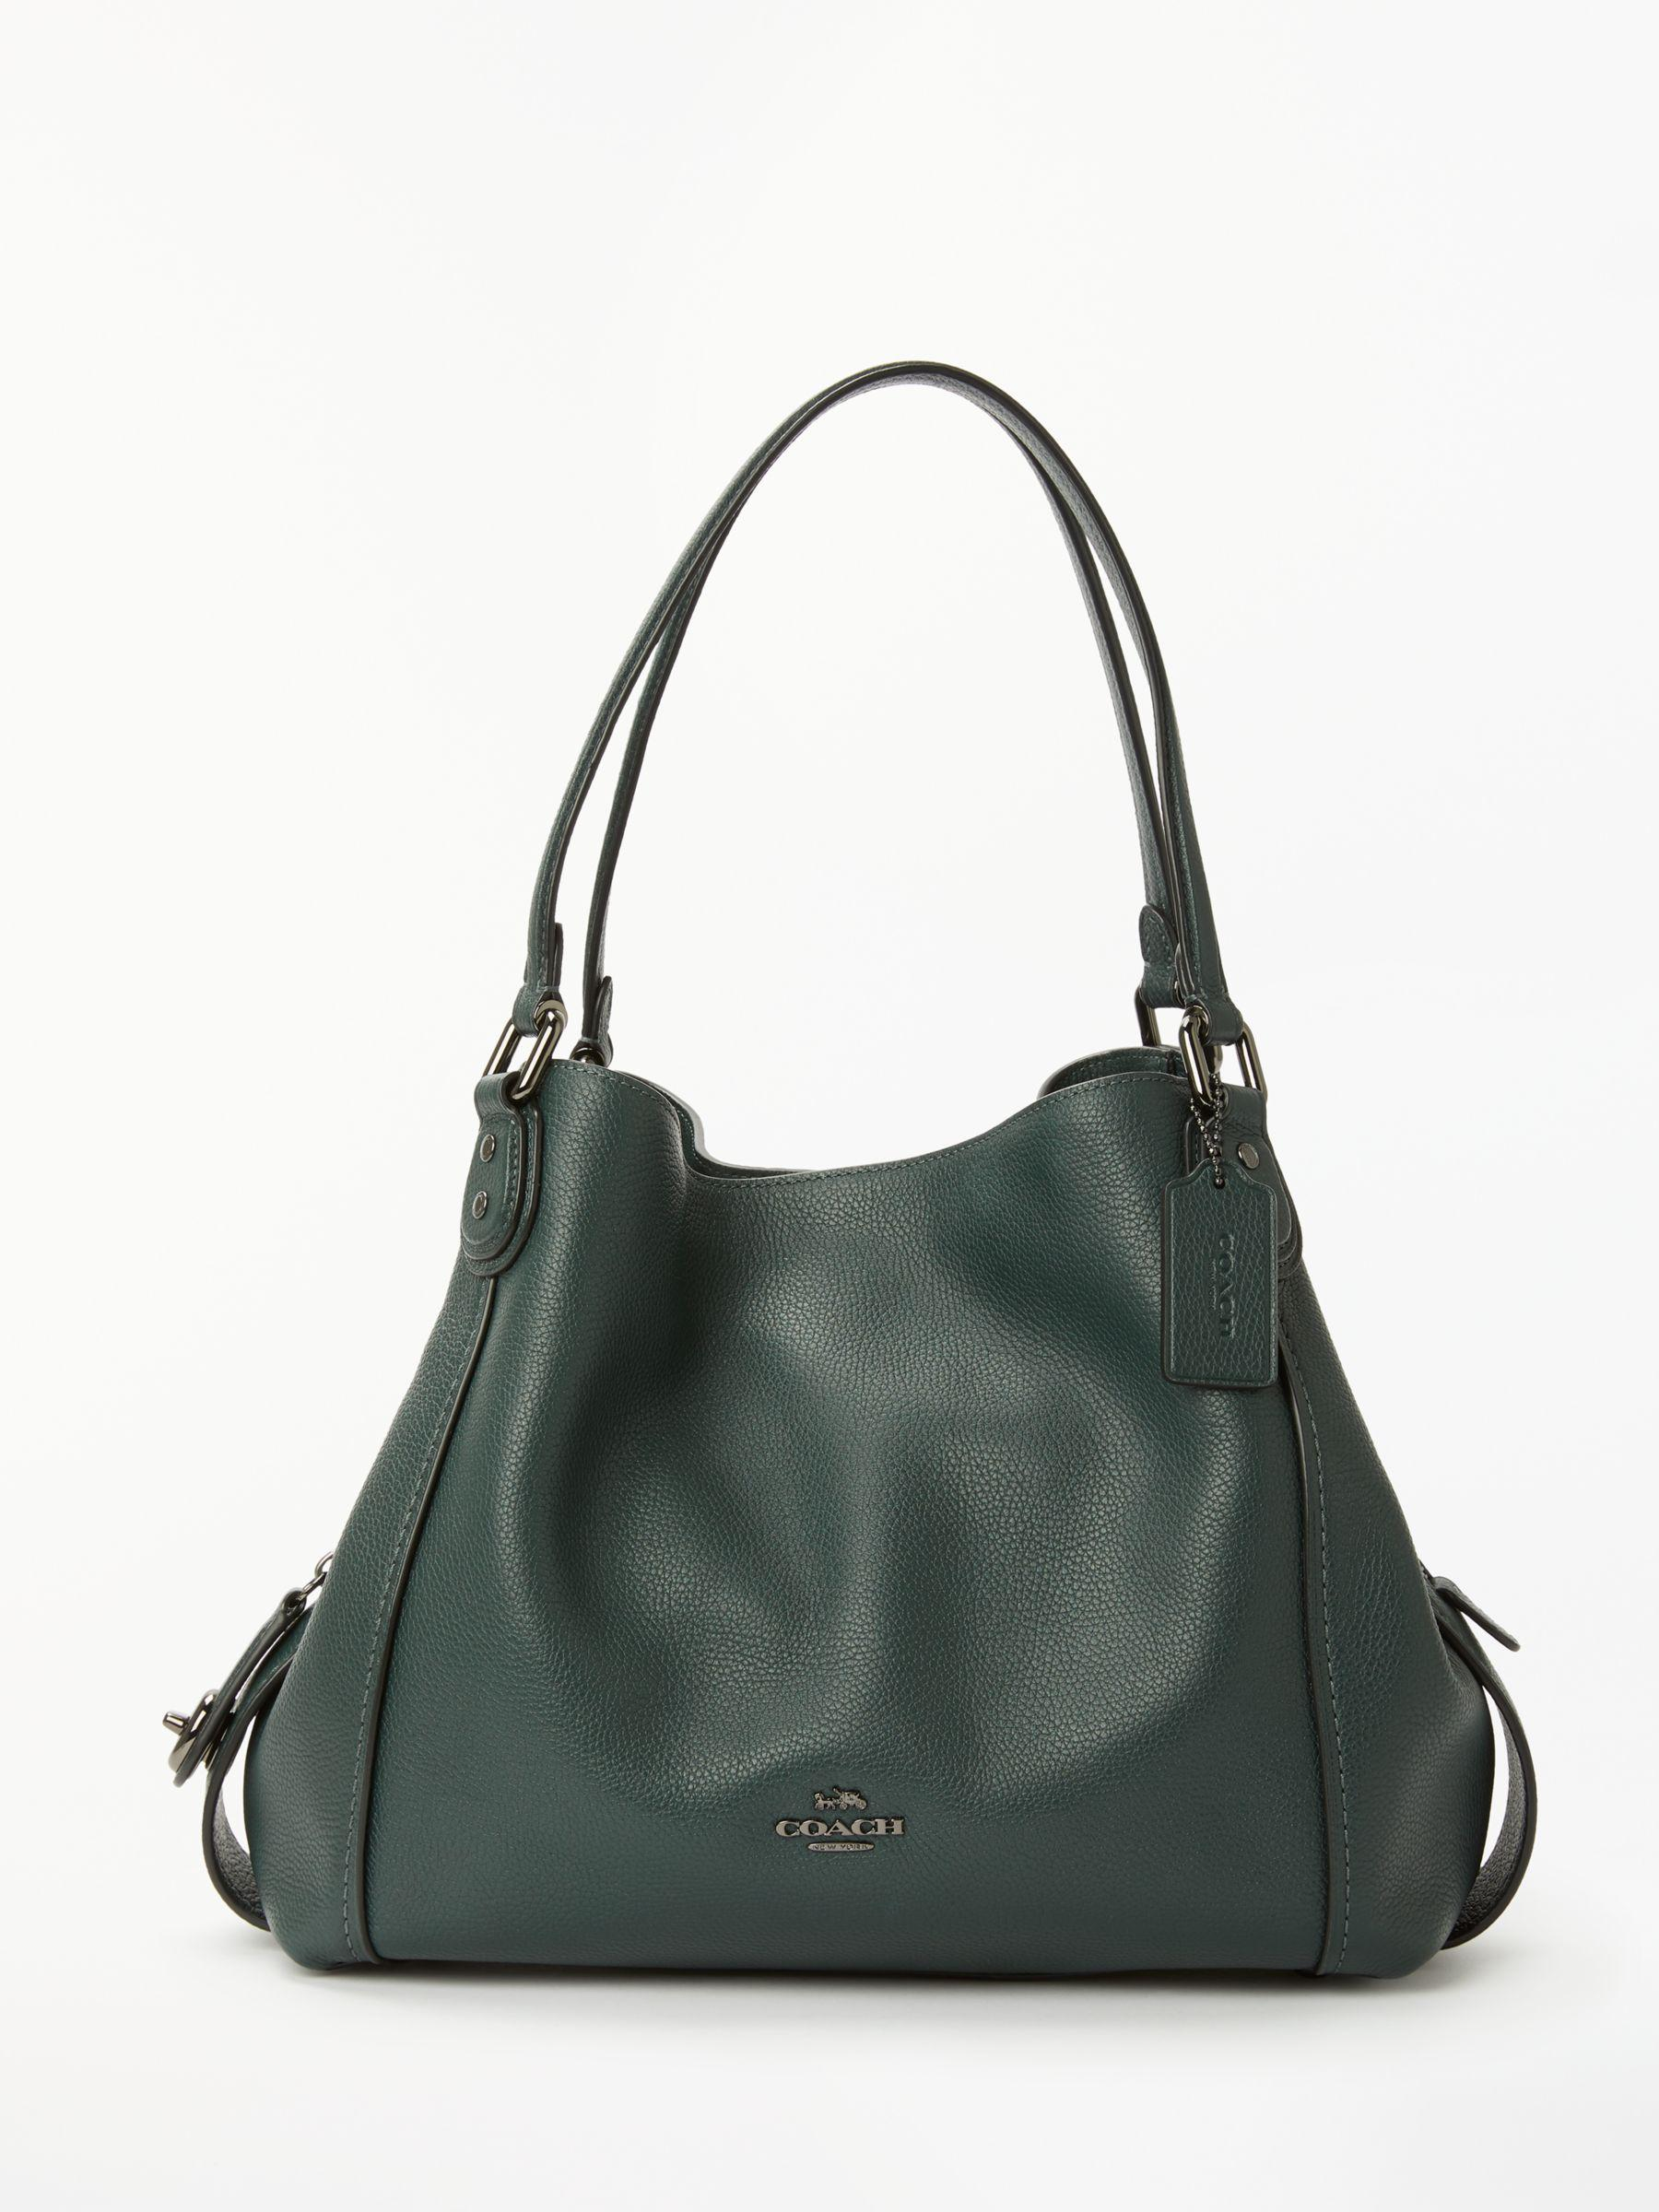 COACH Edie 31 Polished Pebble Leather Shoulder Bag in Green - Lyst c49c0322bba6d